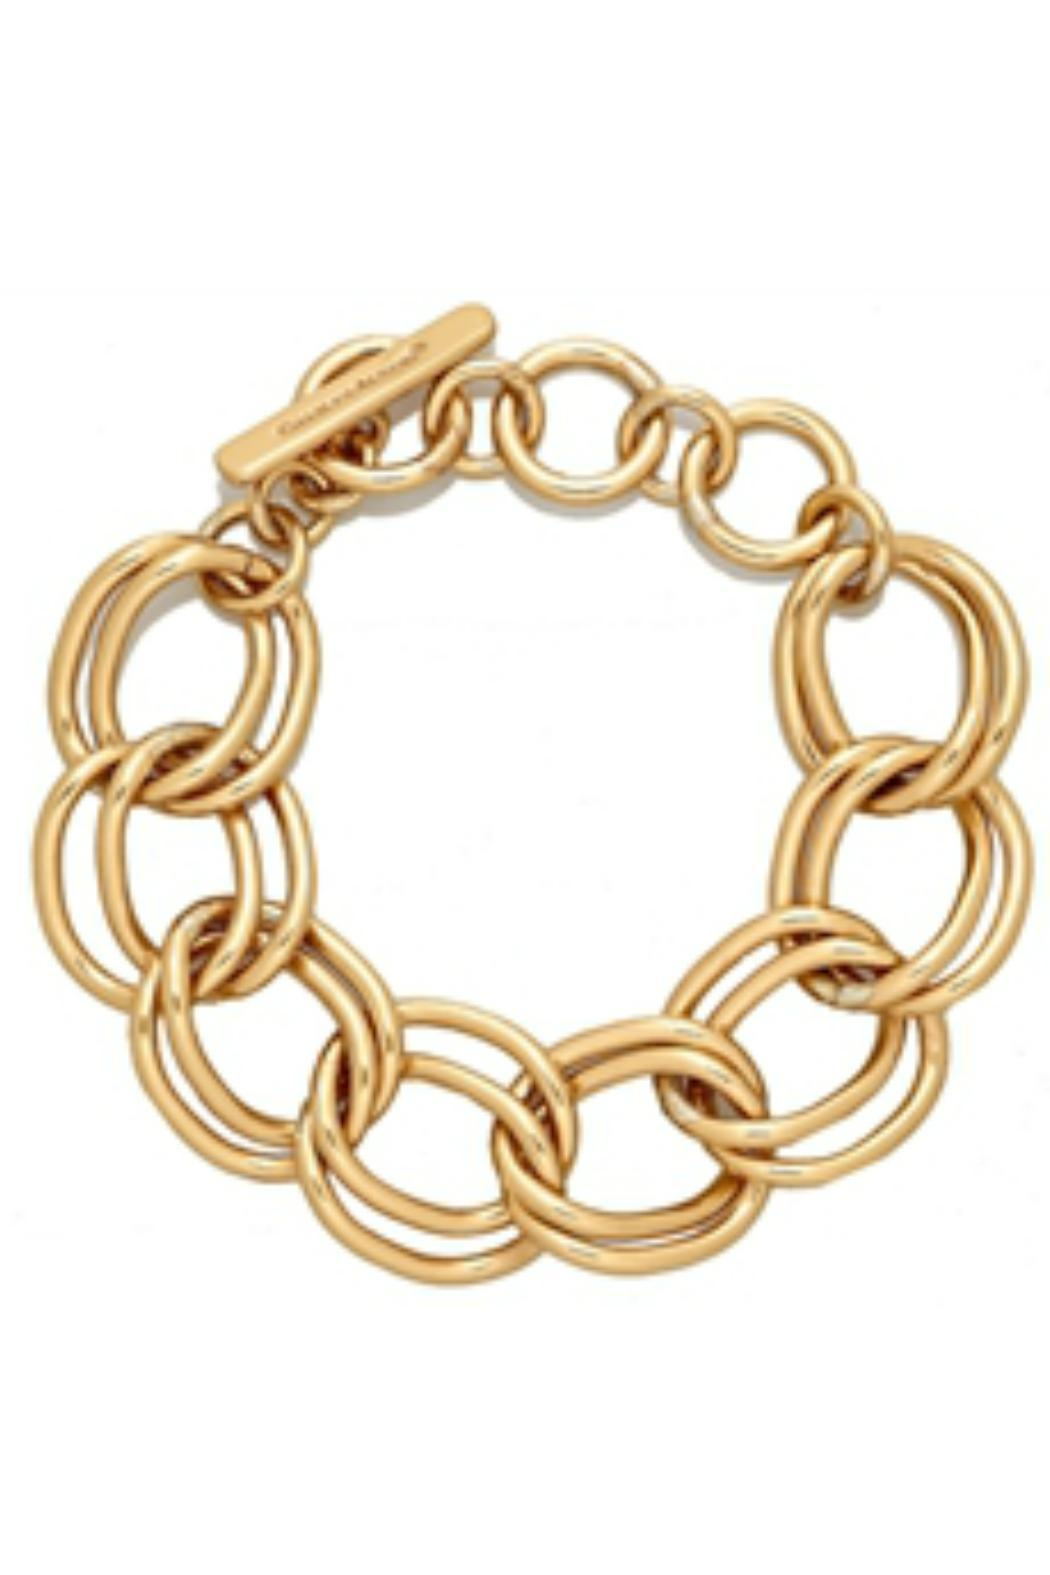 2a36dc02ecae7 Charles Albert Double-Chain Link Bracelet from New Jersey by Locust ...